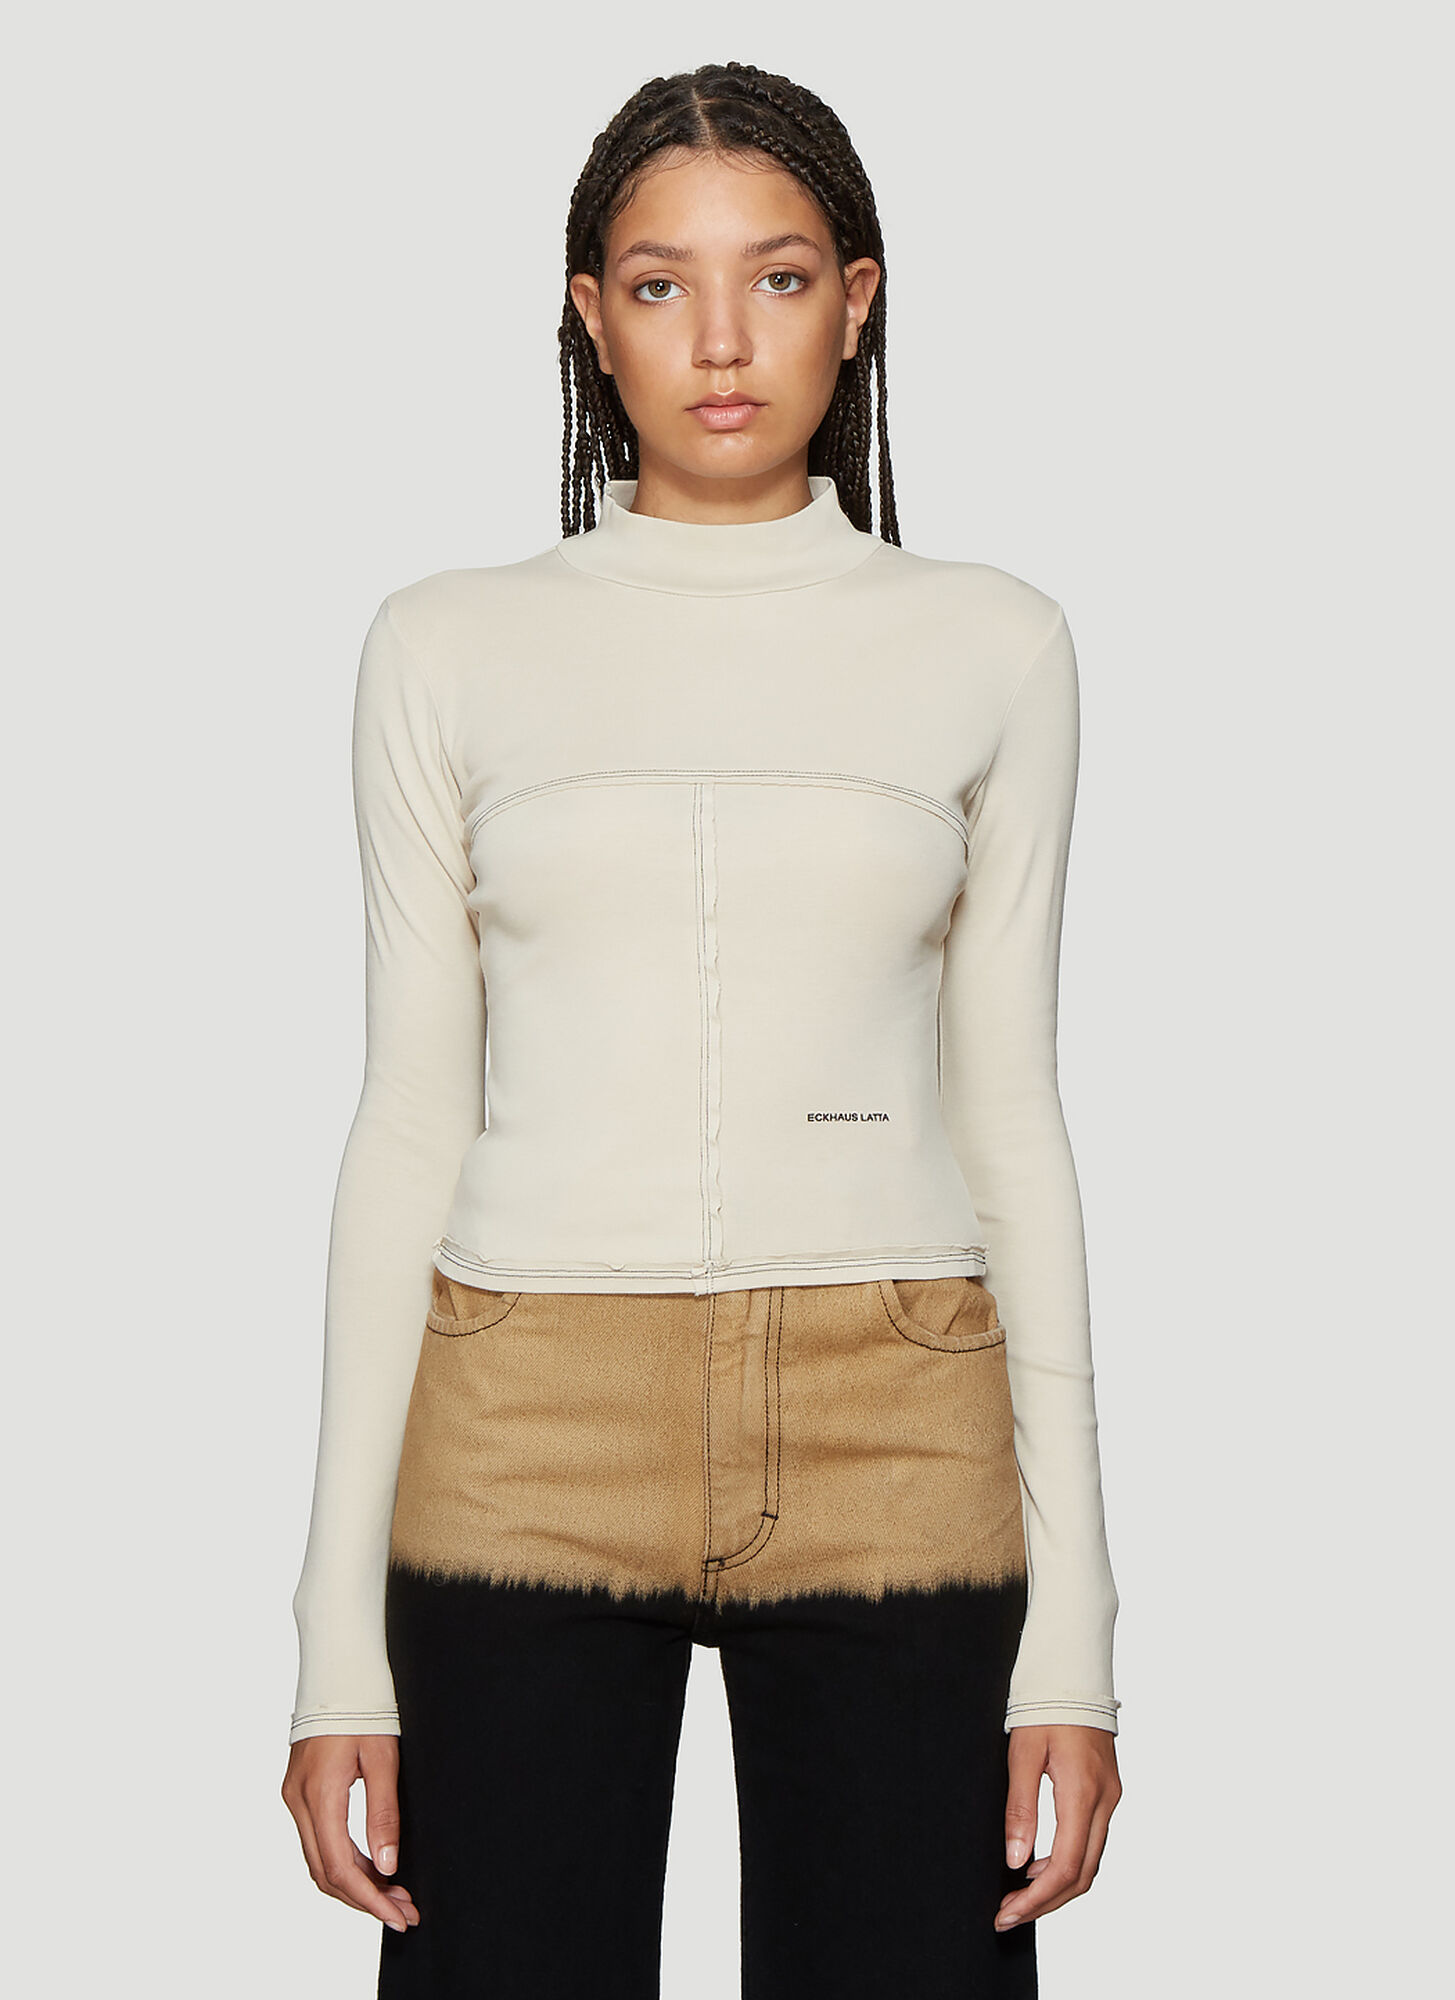 Eckhaus Latta Lapped Baby Turtleneck Cropped Top in Beige